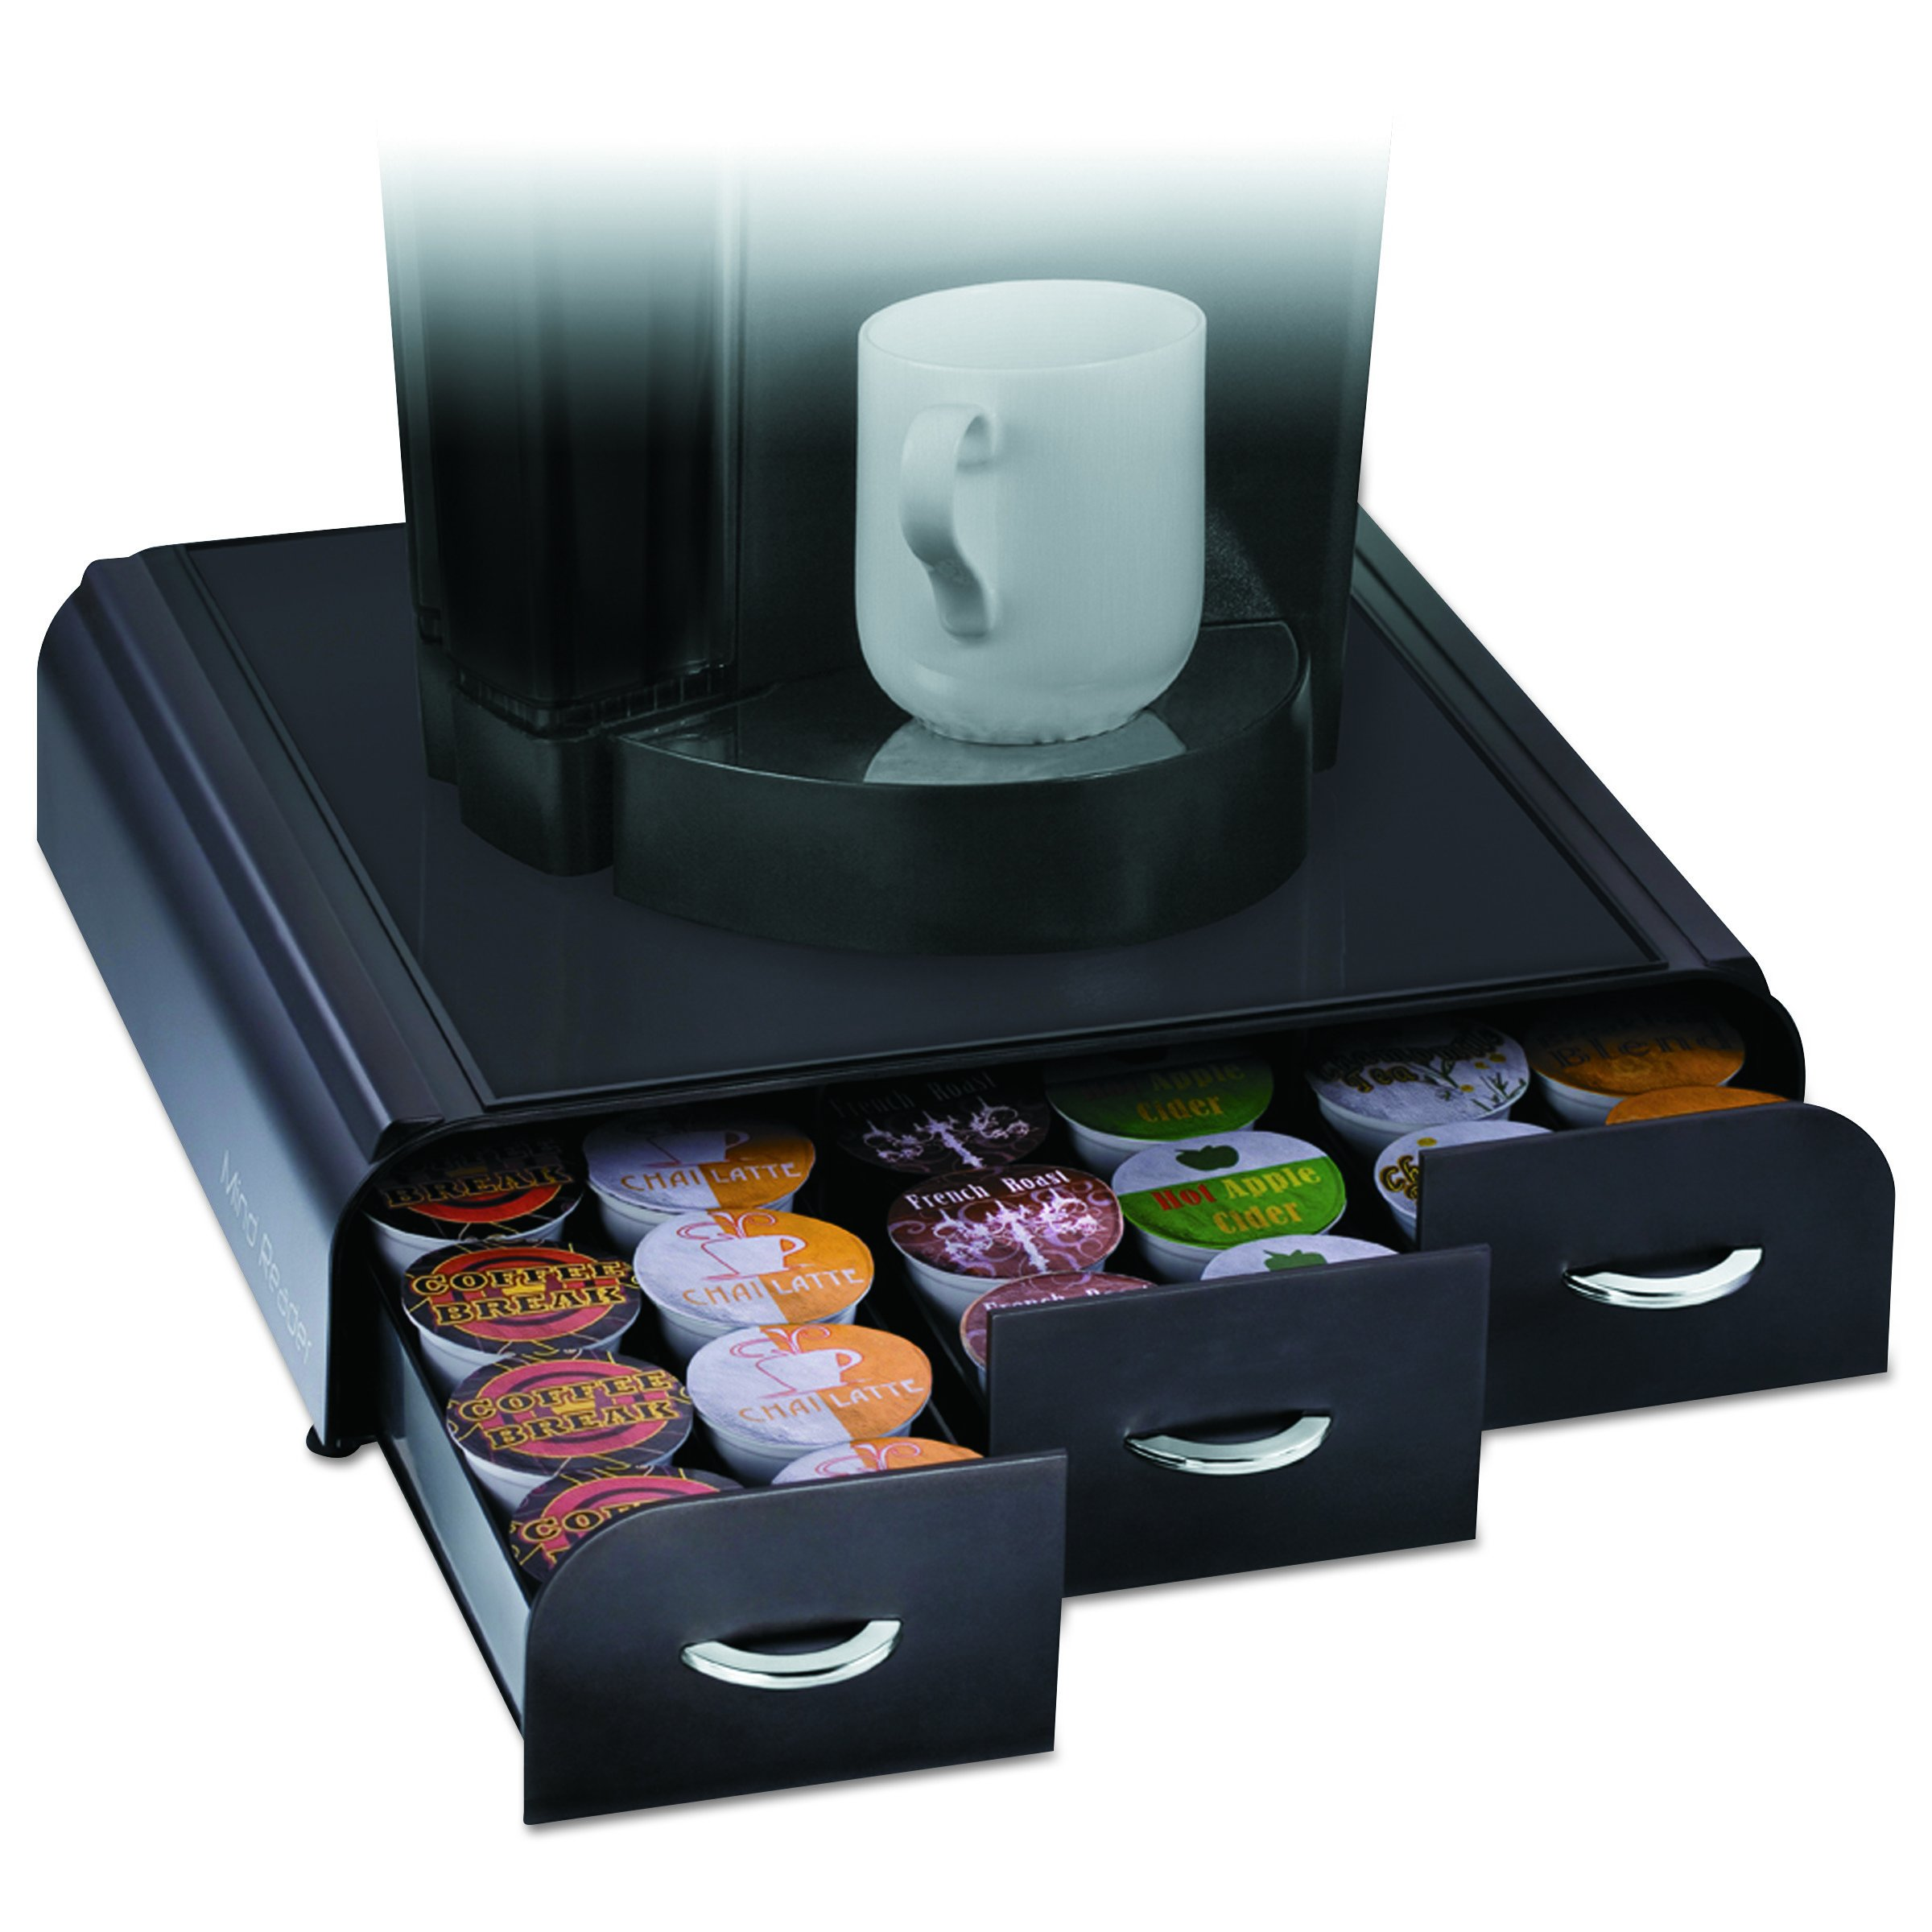 Mind Reader 'Anchor' Triple Drawer K-Cup Dolce Gusto, CBTL, Verismo Single Serve Coffee Pod Holder, Black